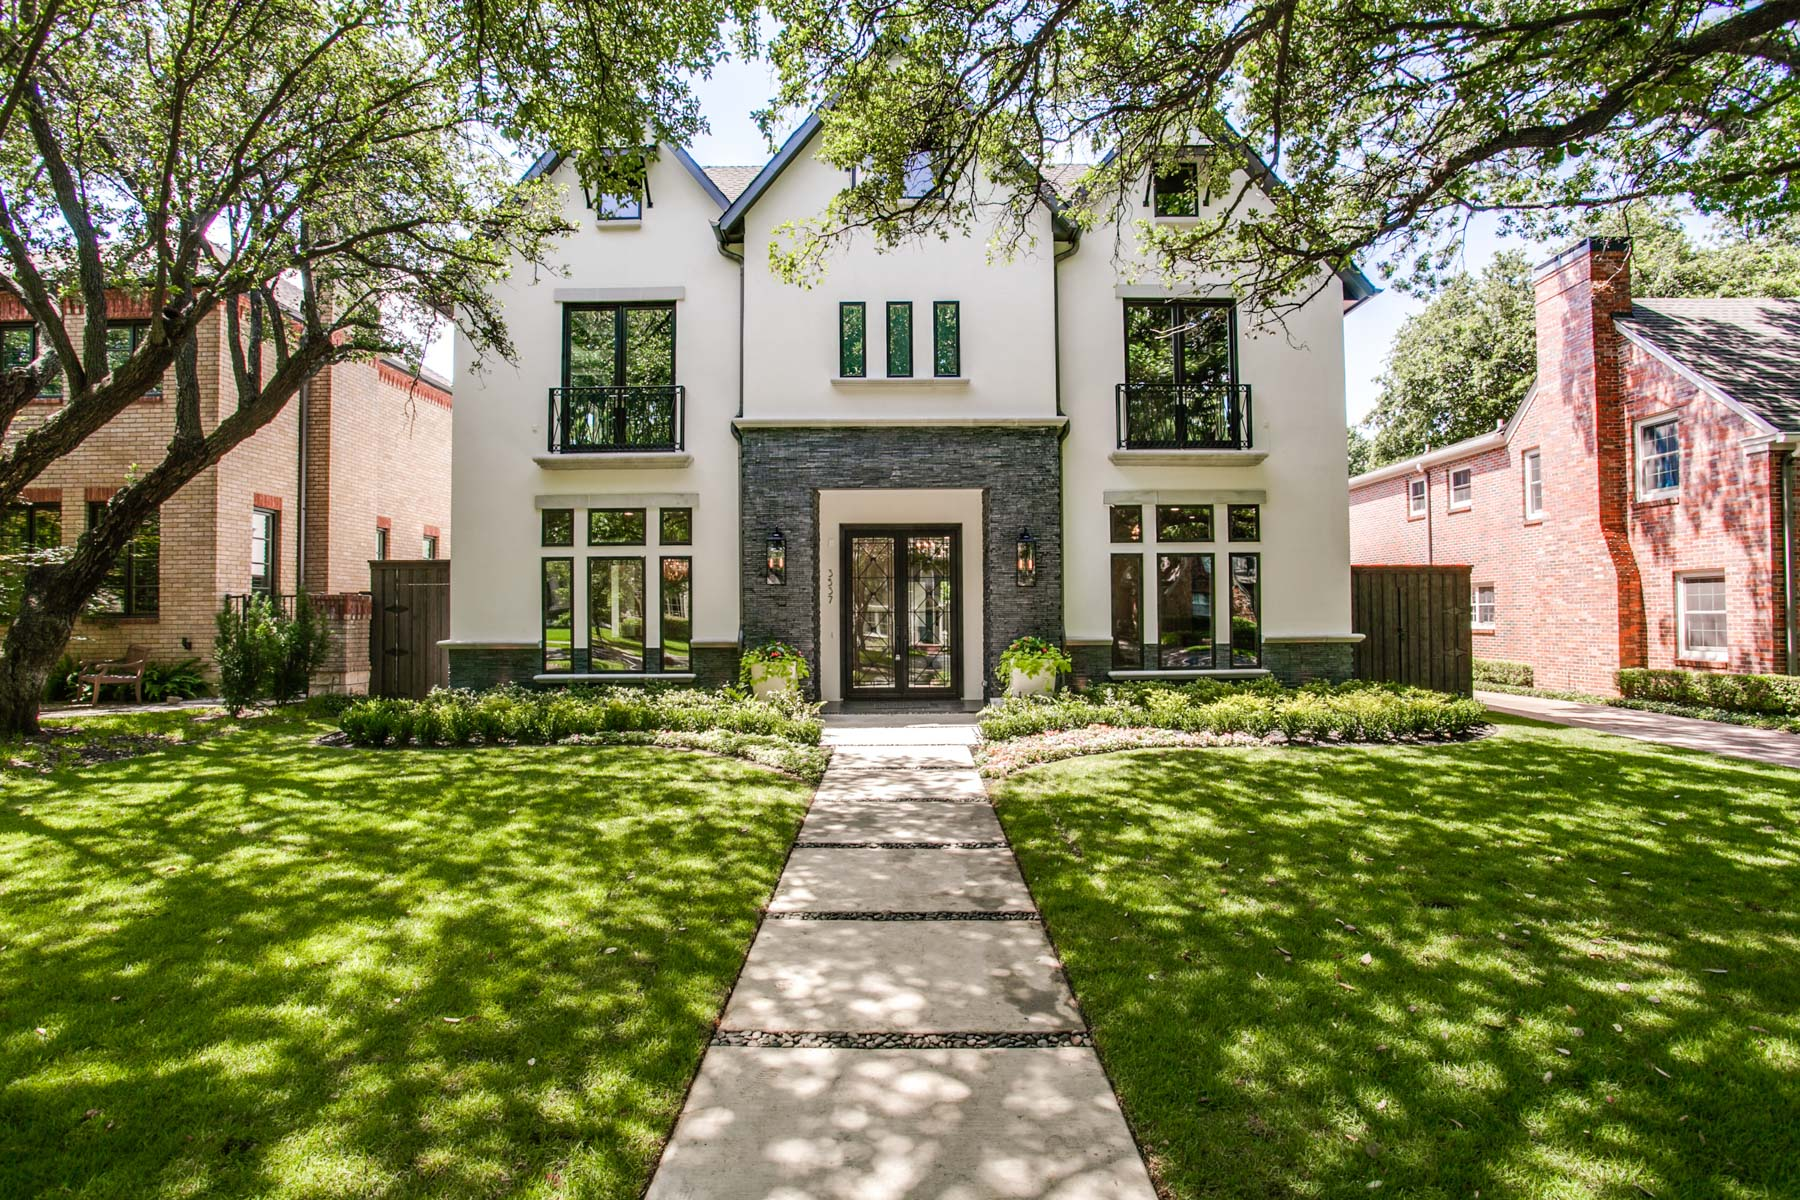 Maison unifamiliale pour l Vente à New Construction Transitional 3537 Milton Avenue Dallas, Texas, 75205 États-Unis